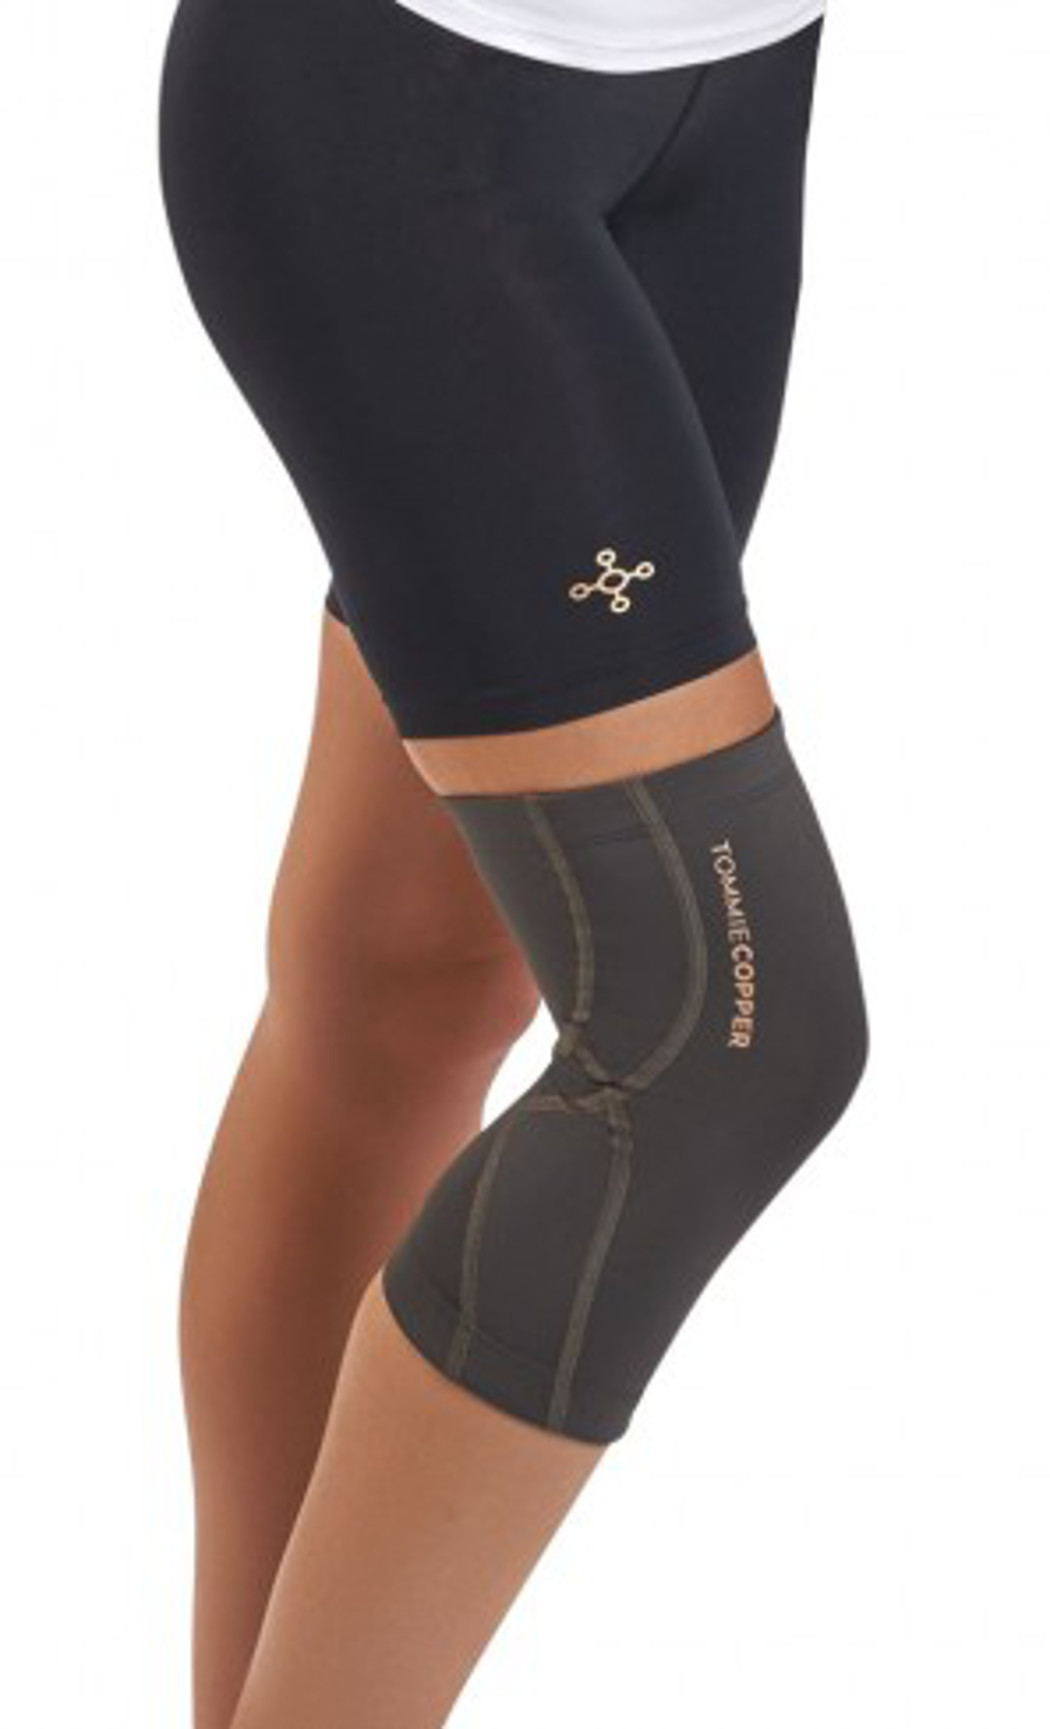 Tommie Copper - Tommie Copper Performance Knee 2.0 for ...